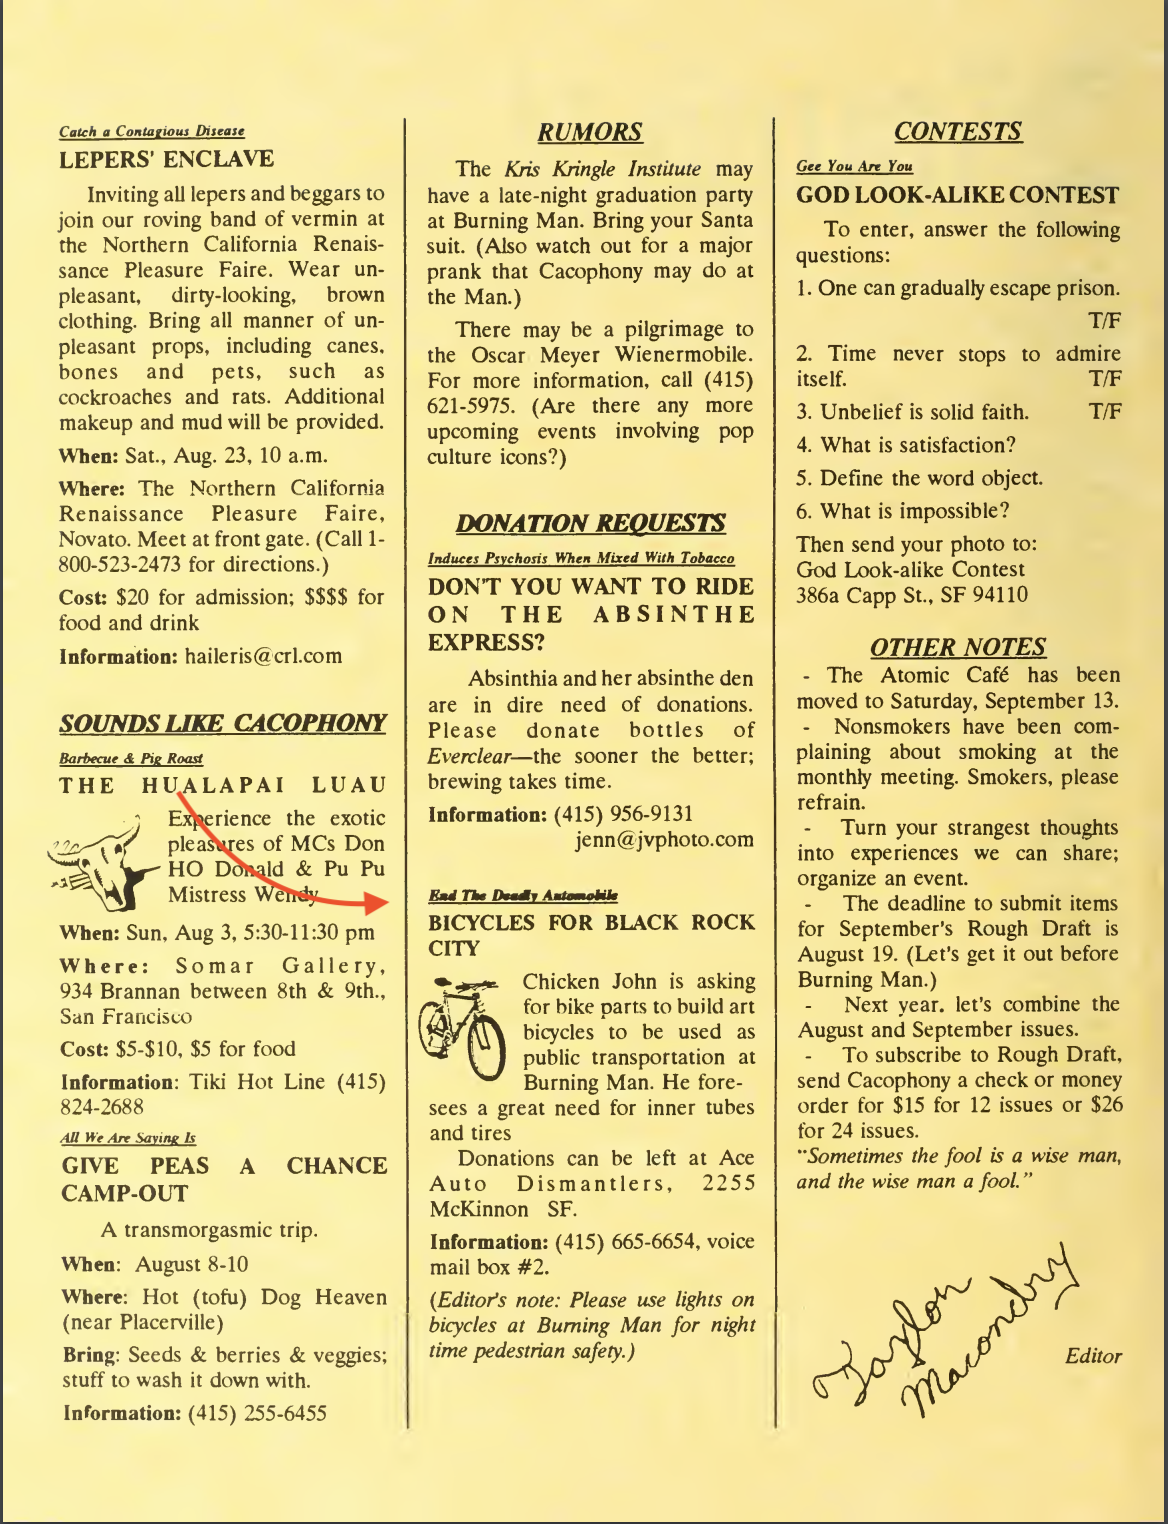 Aug 1997 - Bikes for Burning Man request.png